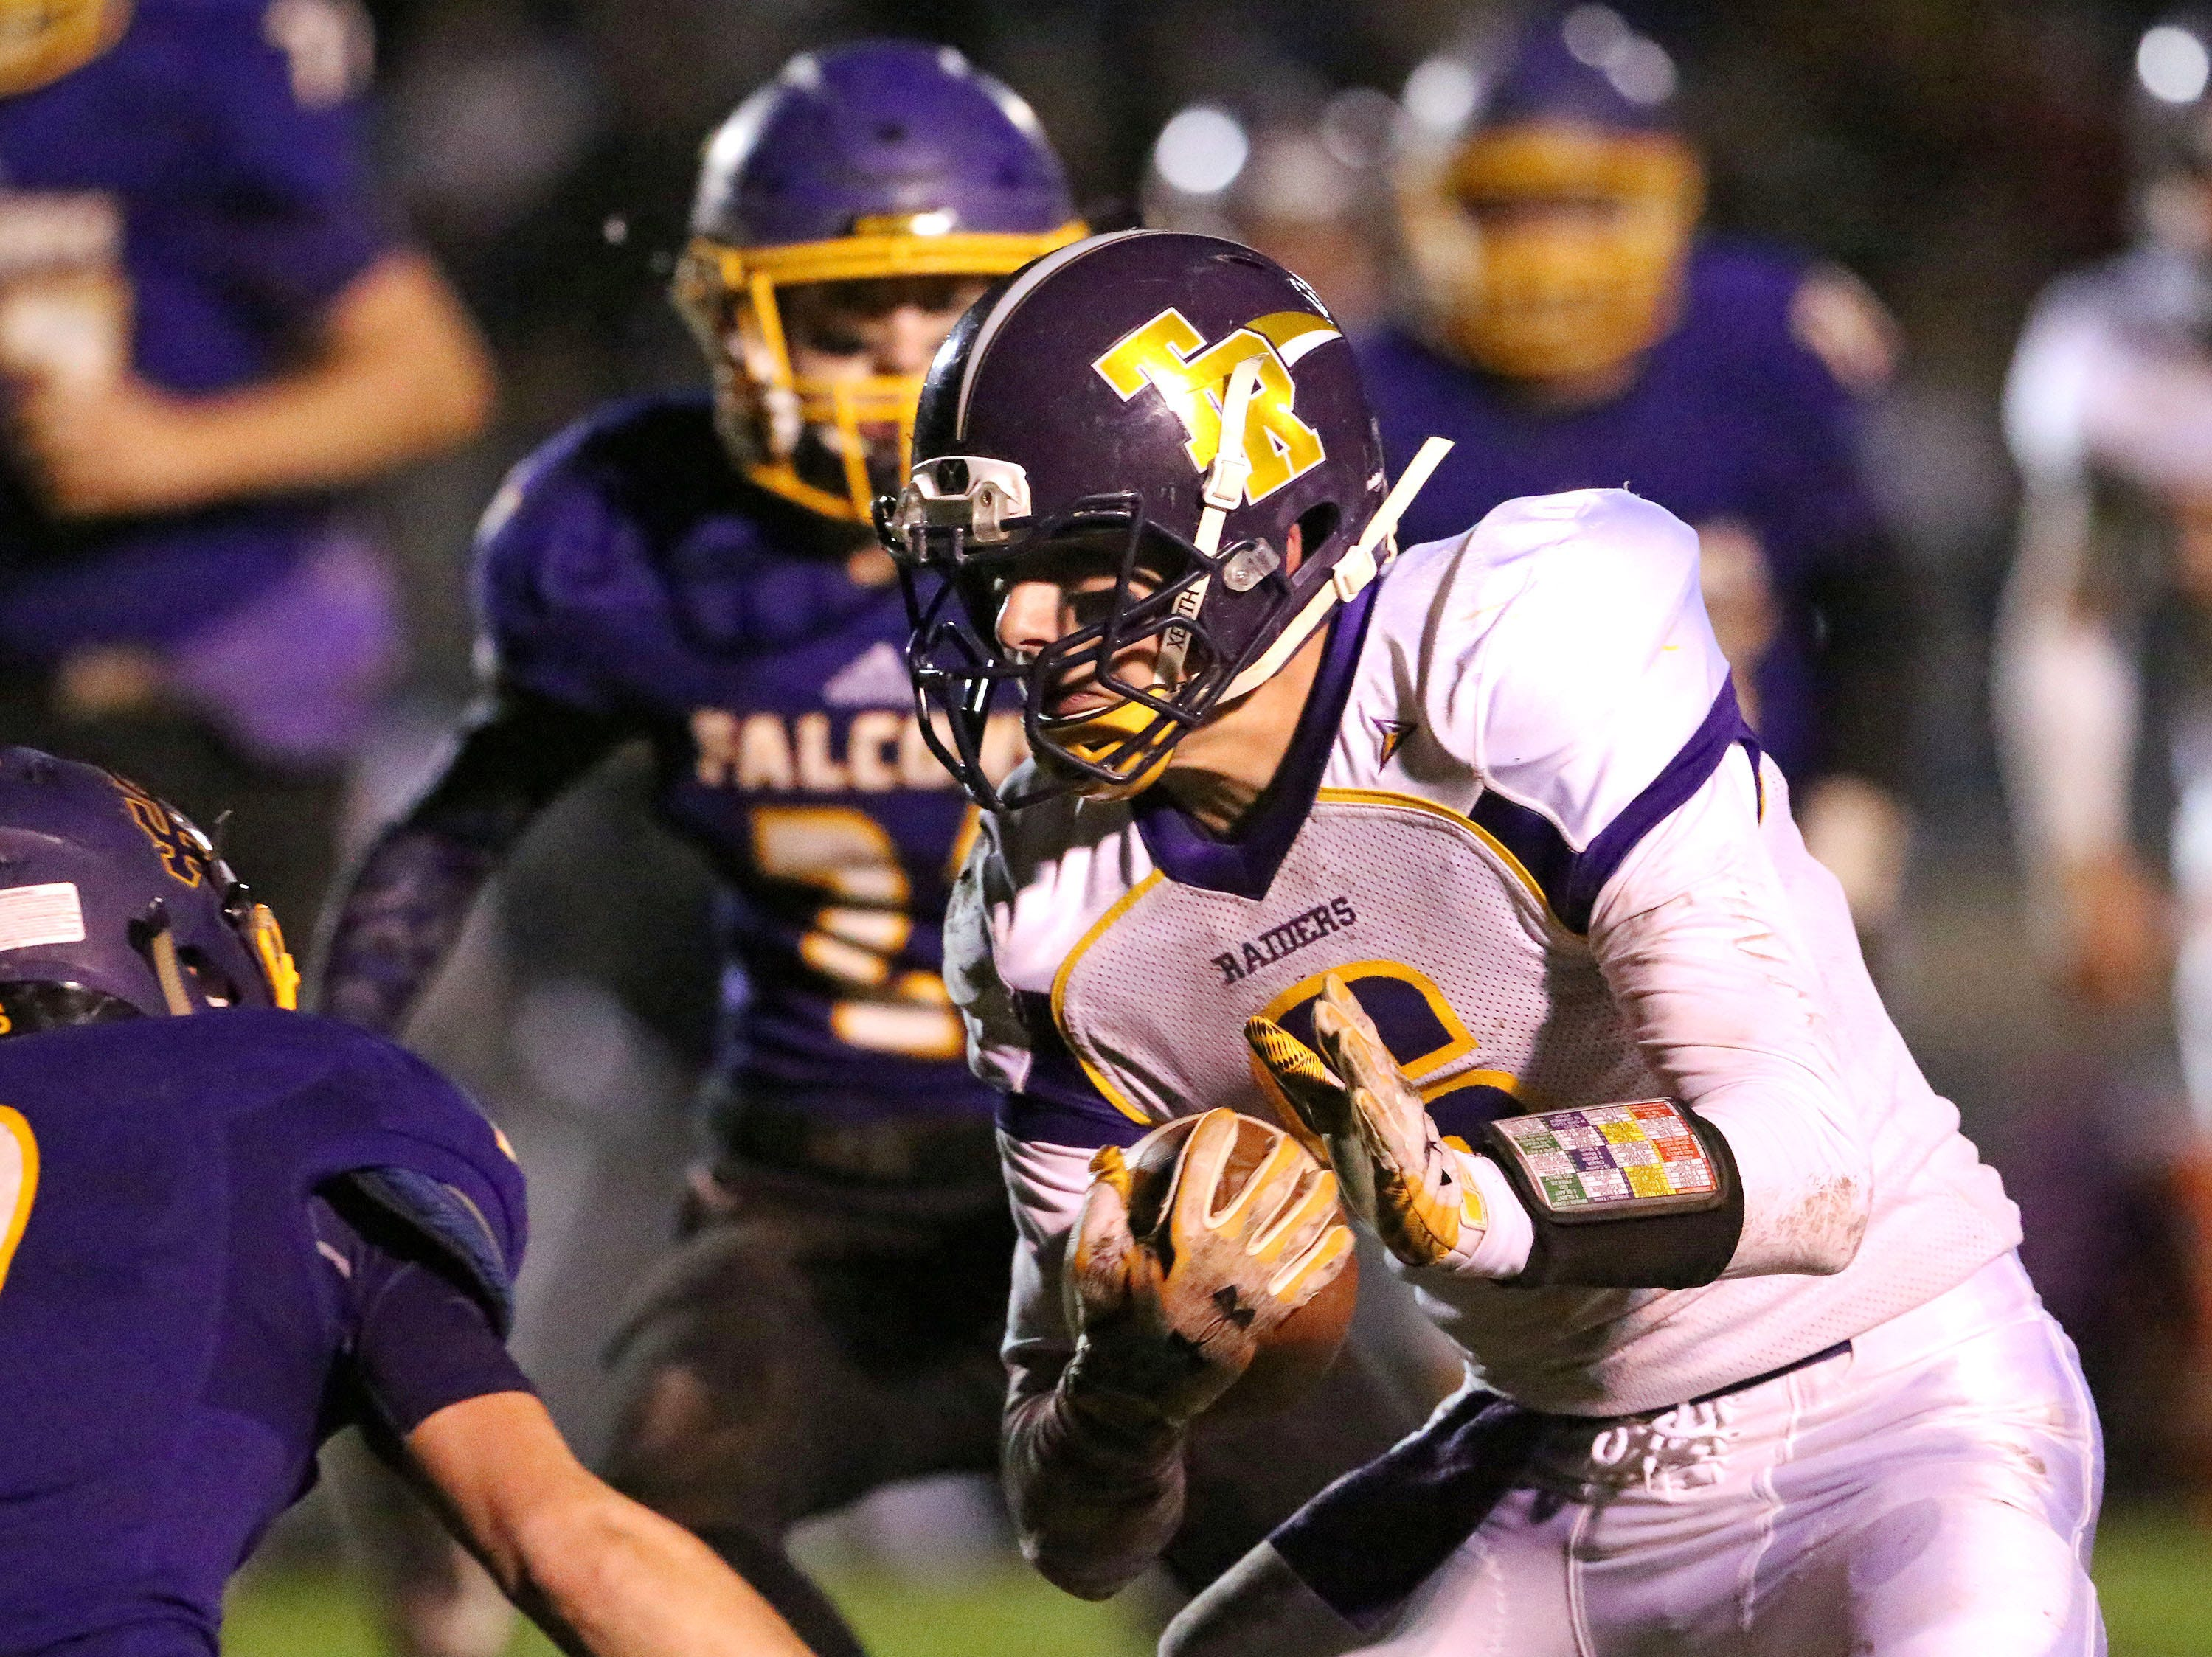 Two Rivers' Kyle Stewart (6) carries the ball against Sheboygan Falls, Friday, October 12, 2018, in Sheboygan Falls, Wis.